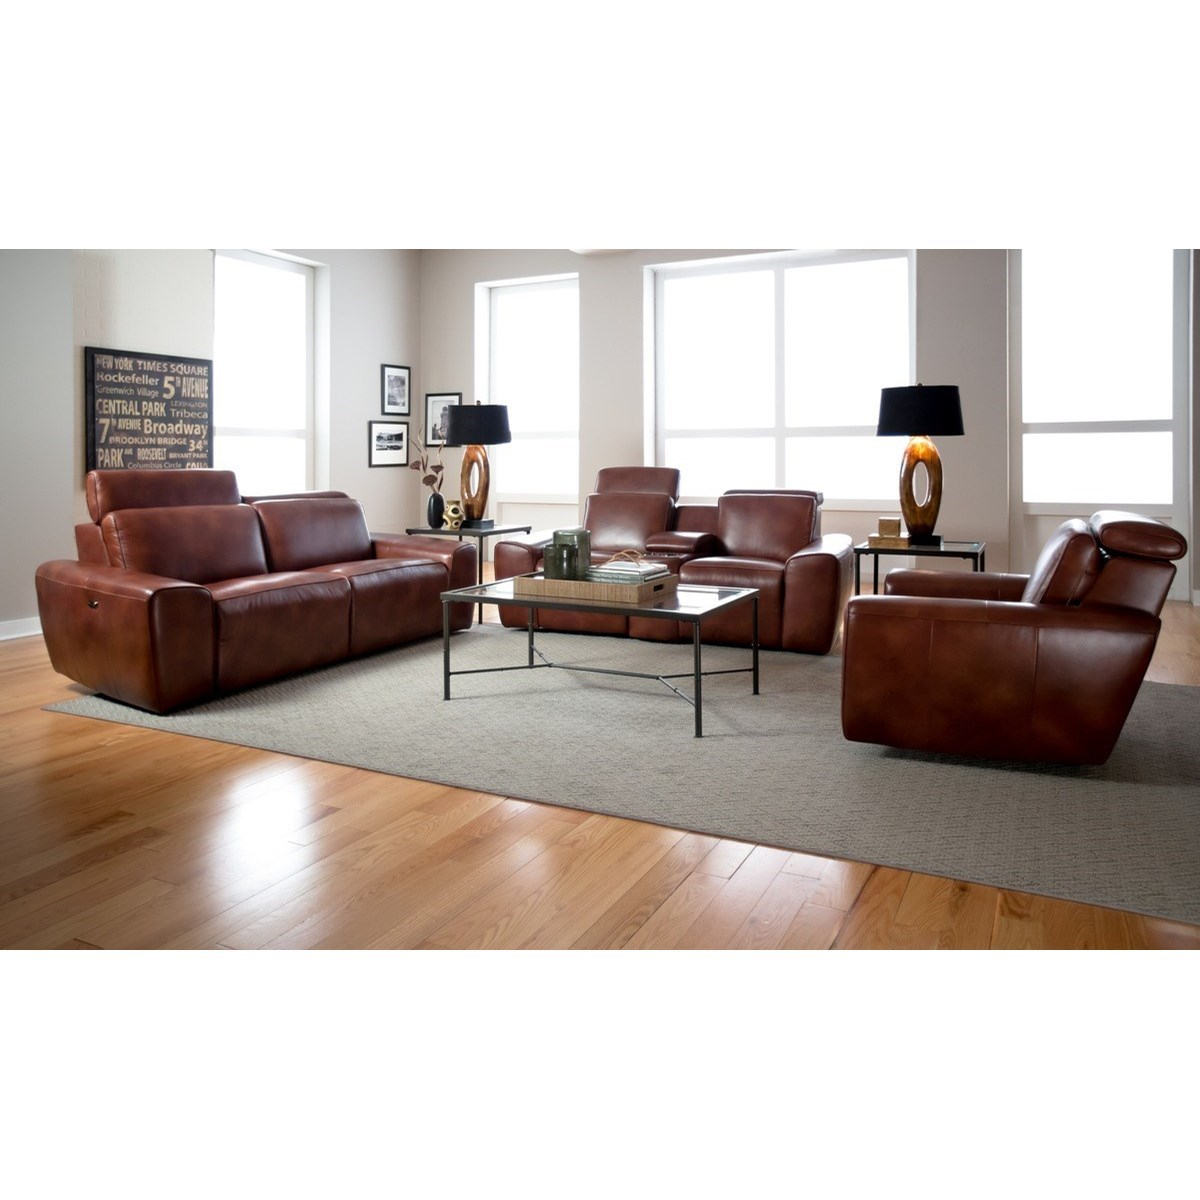 Ashley Furniture Beaumont Tx: Palliser Beaumont Contemporary Sofa Power Recliner With